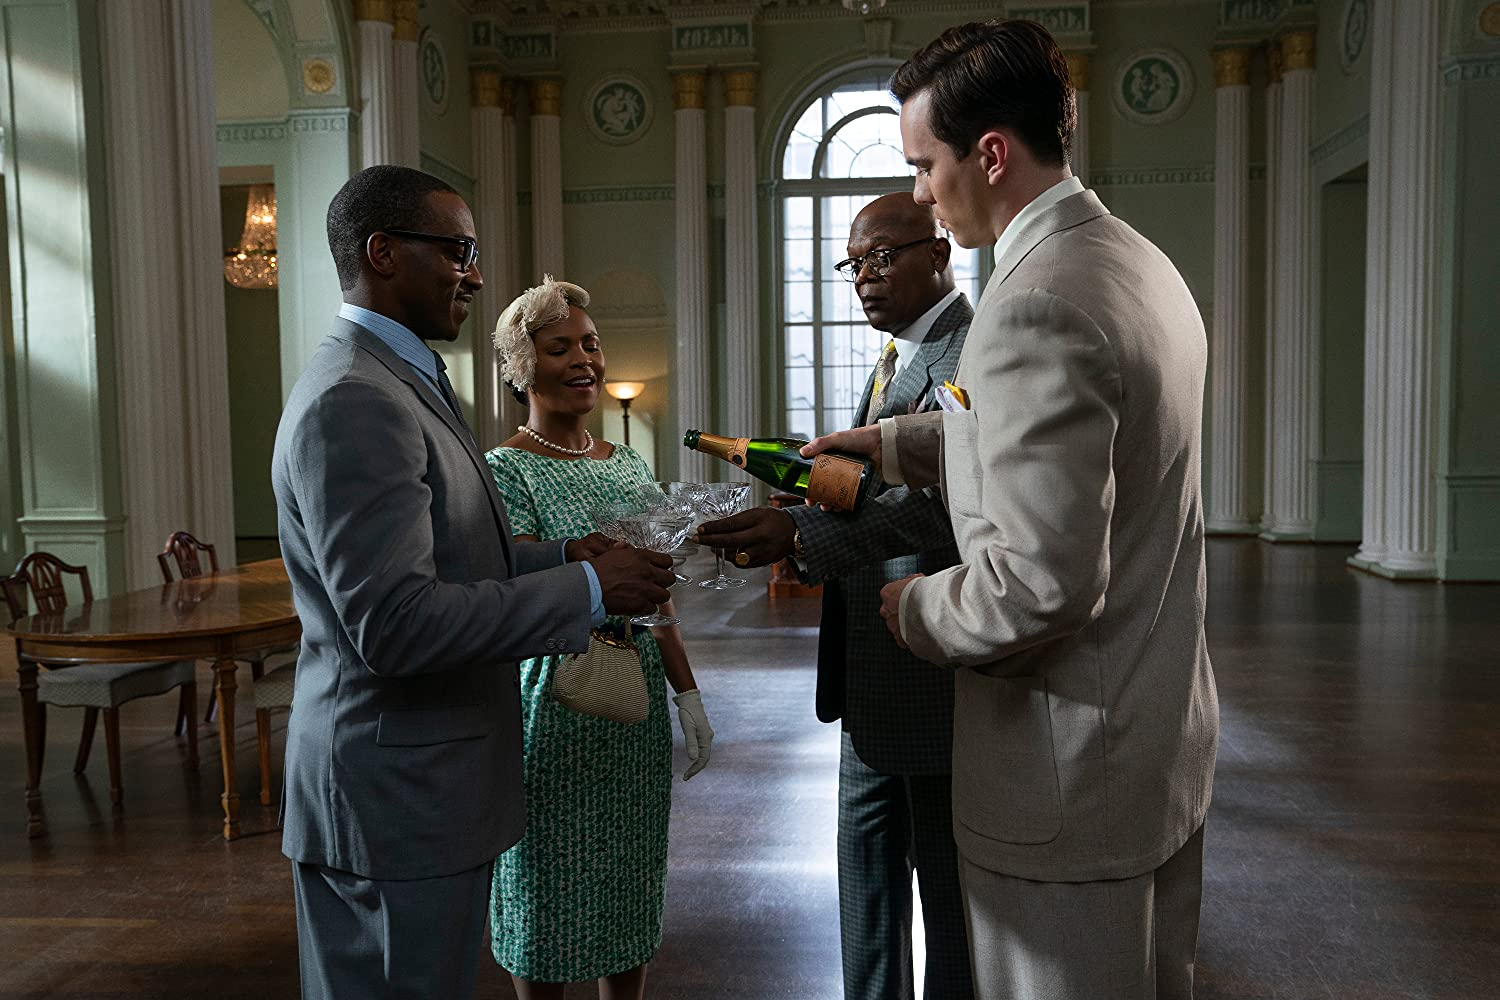 Samuel L. Jackson, Nia Long, Nicholas Hoult, and Anthony Mackie in The Banker (2020)